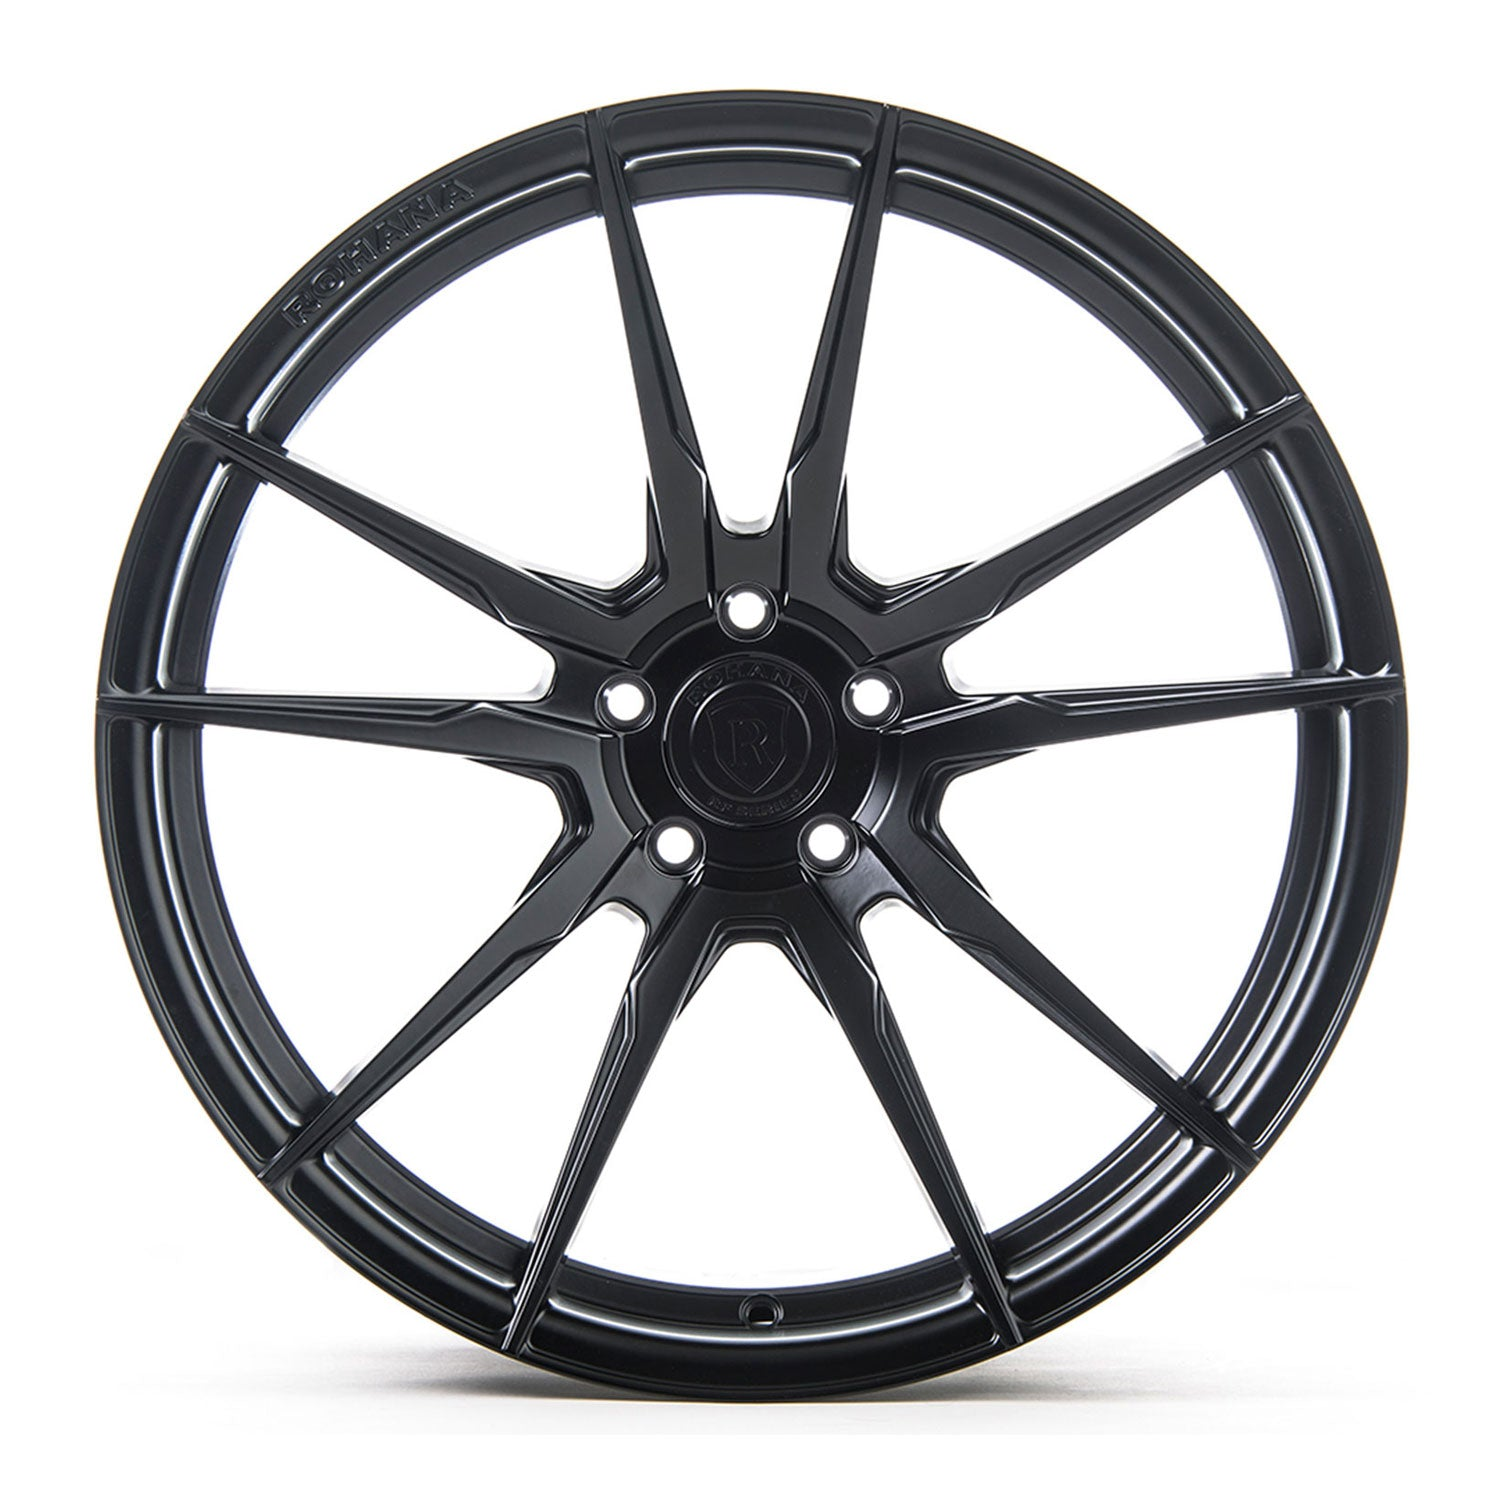 "Rohana RF2 Slingshot 20"" Super Wide Rear (345 or 335) Wheel and Tire Package - Rev Dynamics"